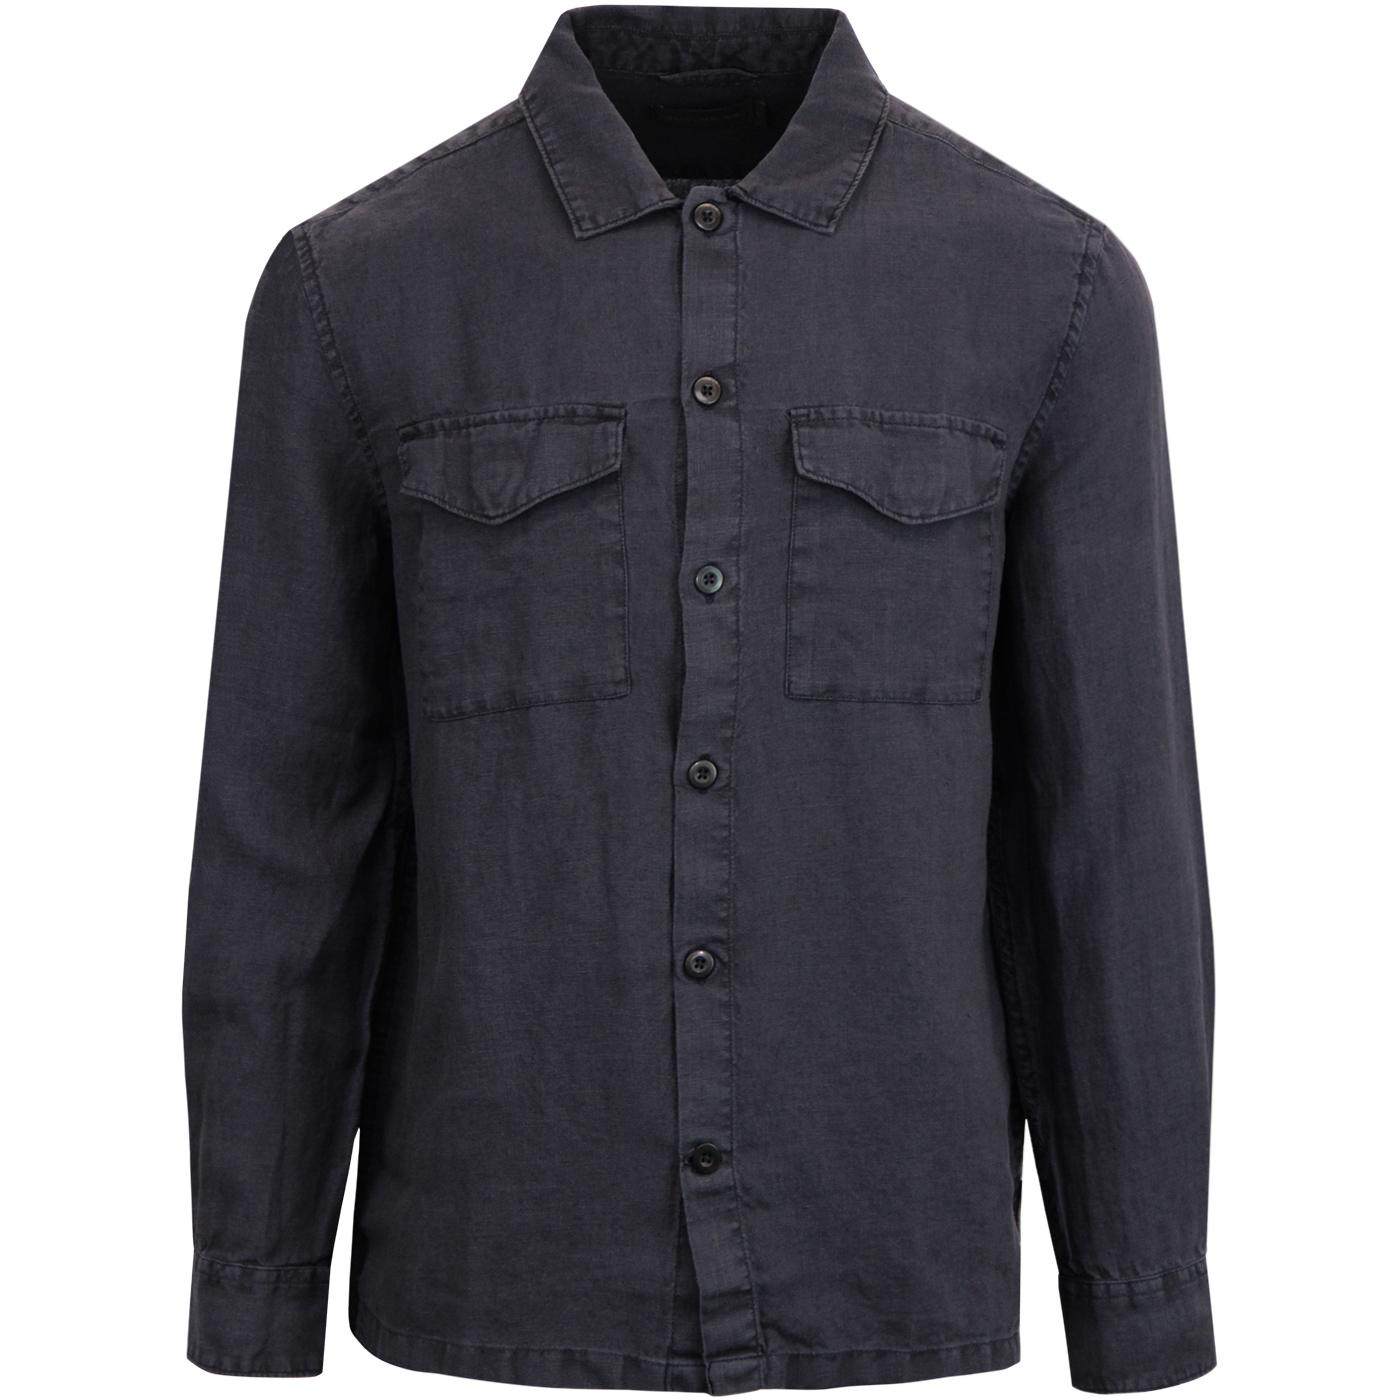 FRENCH CONNECTION Two Pocket Retro Linen Shirt